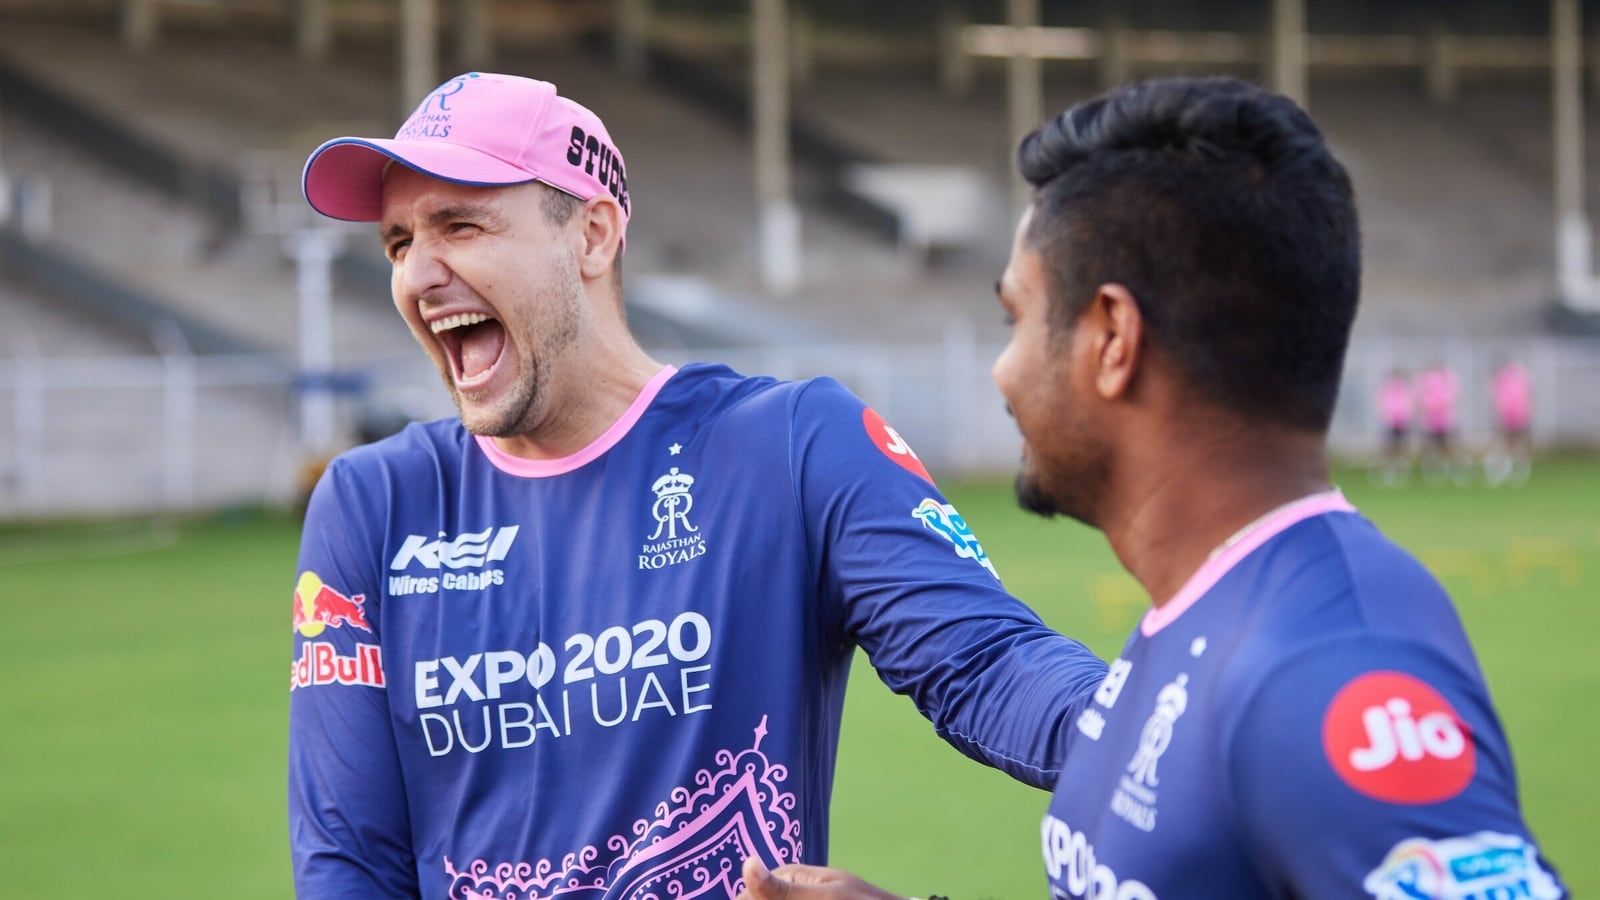 Have spoken to Buttler, Stokes, Archer': Liam Livingstone gears up for IPL debut for Rajasthan Royals | Cricket - Hindustan Times